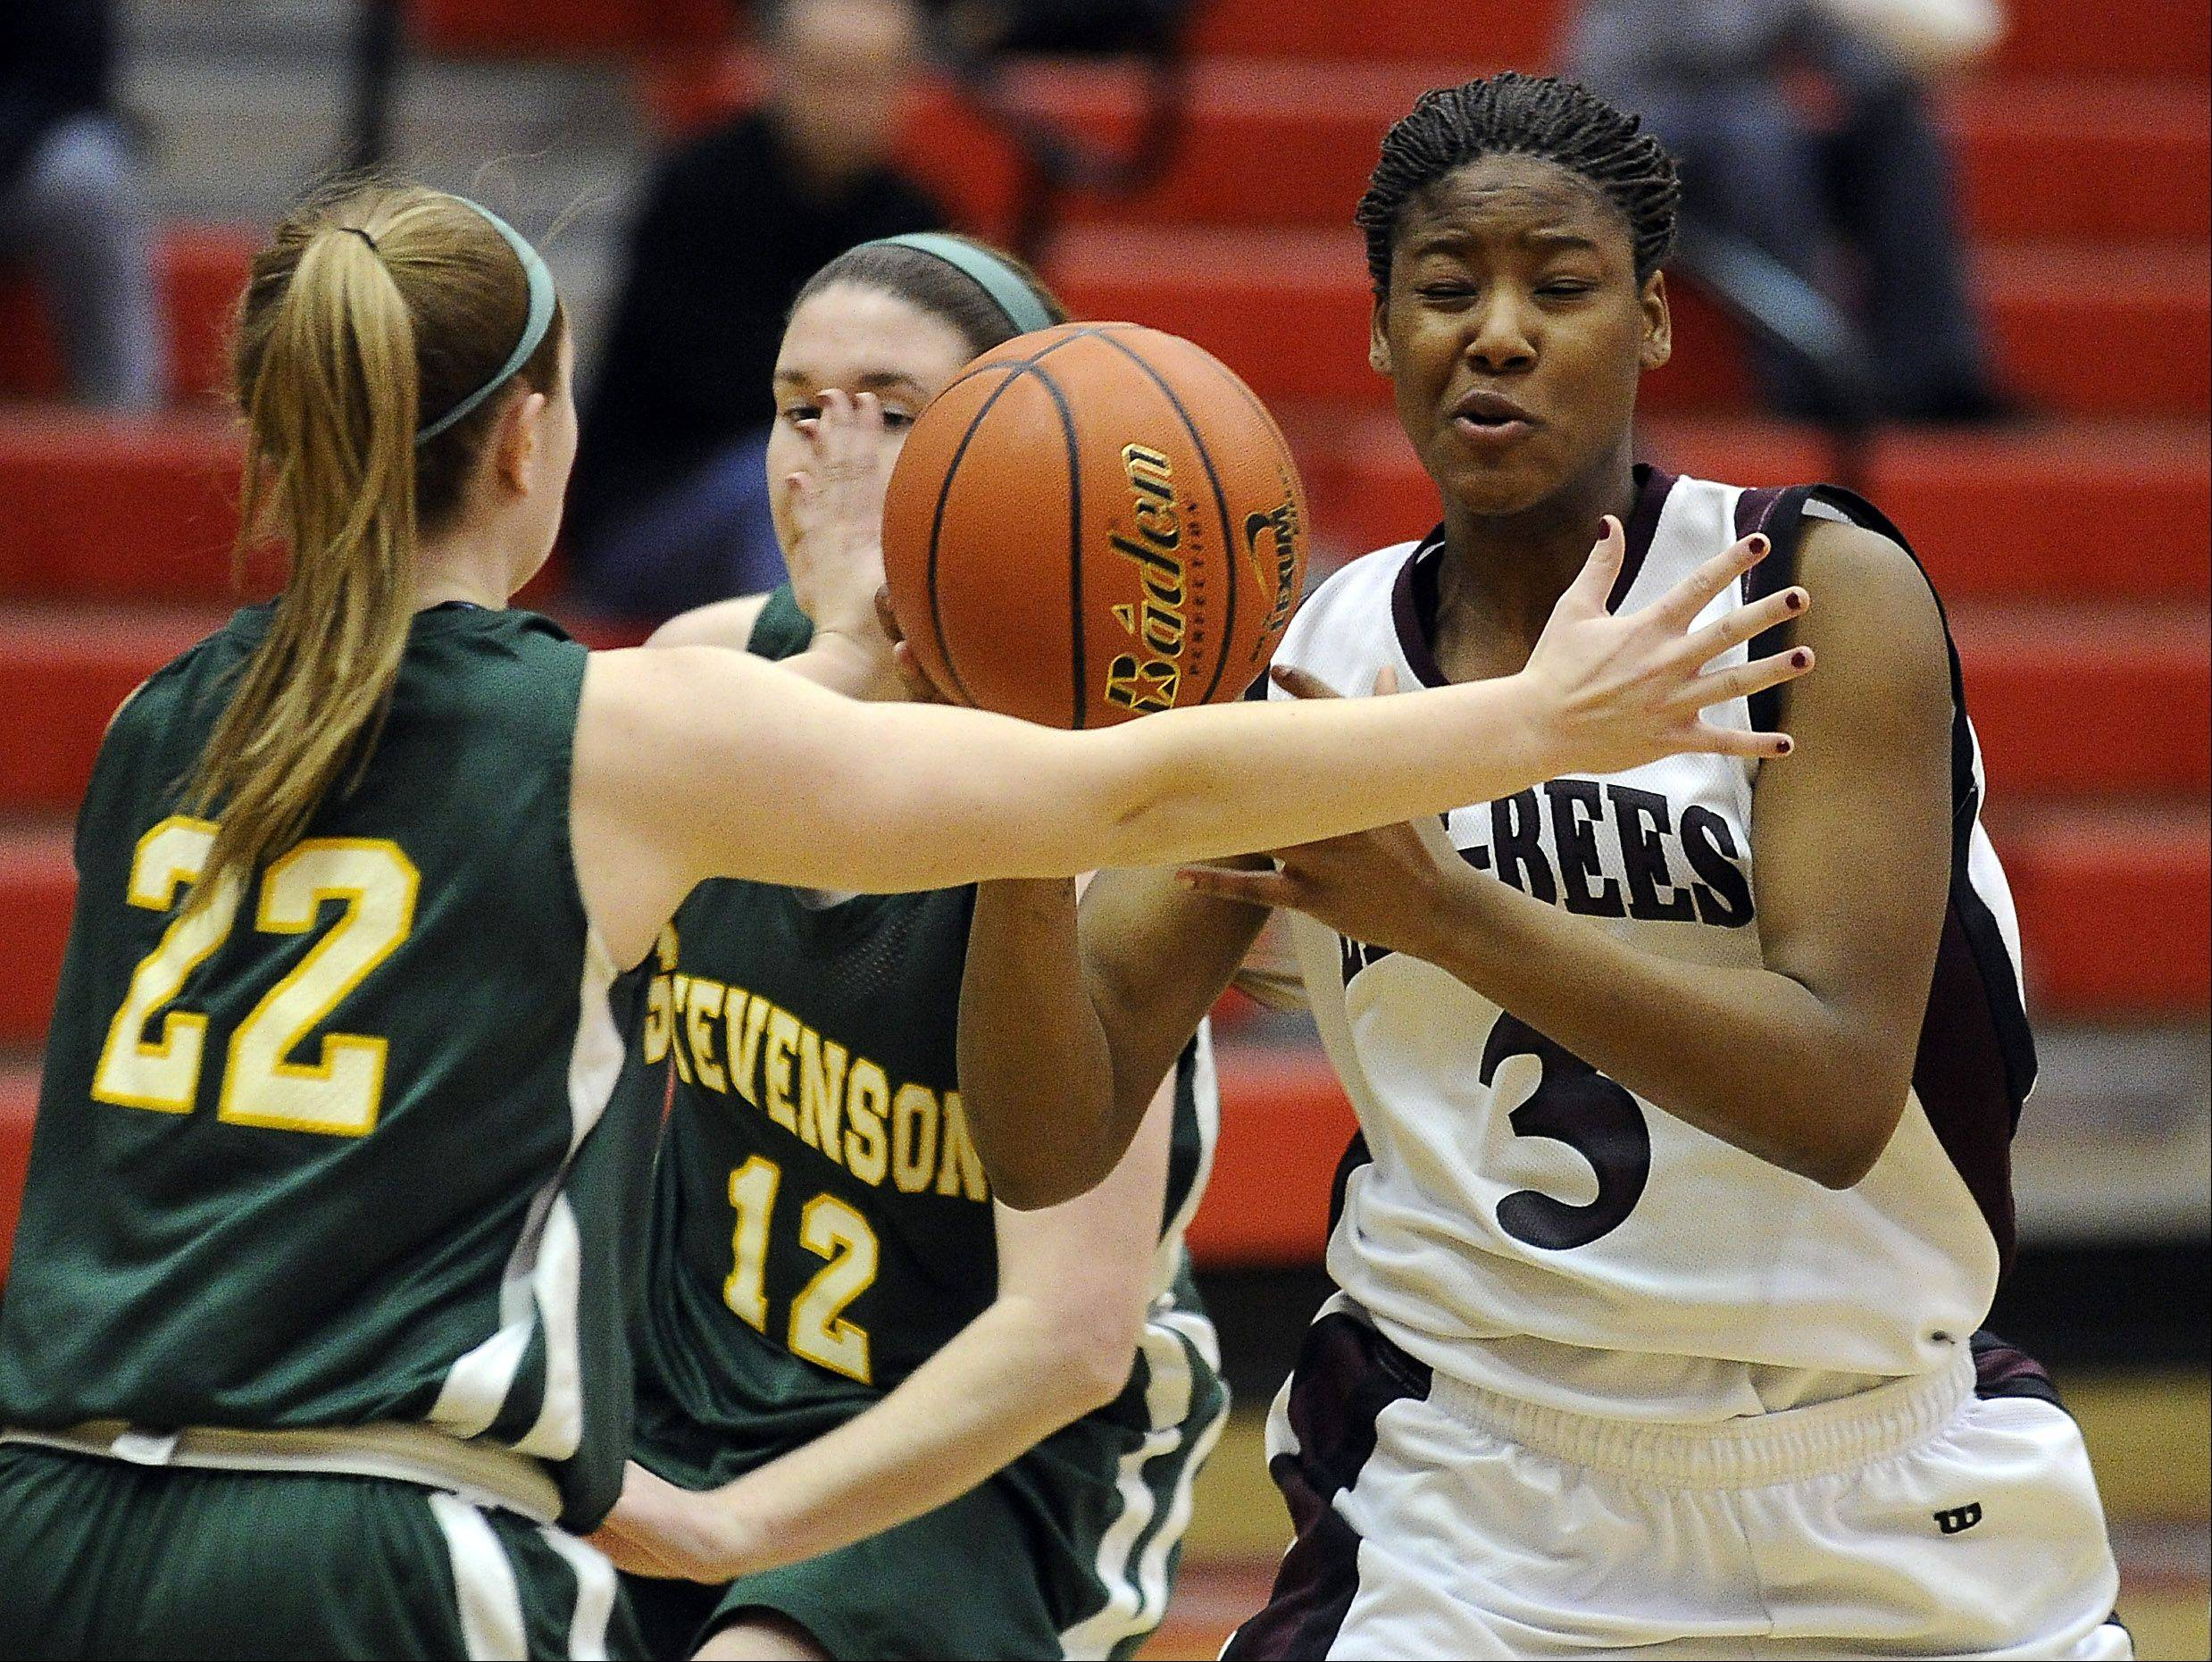 Stevenson's Katherine Moffat knocks the ball loose from Zion-Benton's Octavia Crump during Monday's sectional basketball game at Palatine High School.